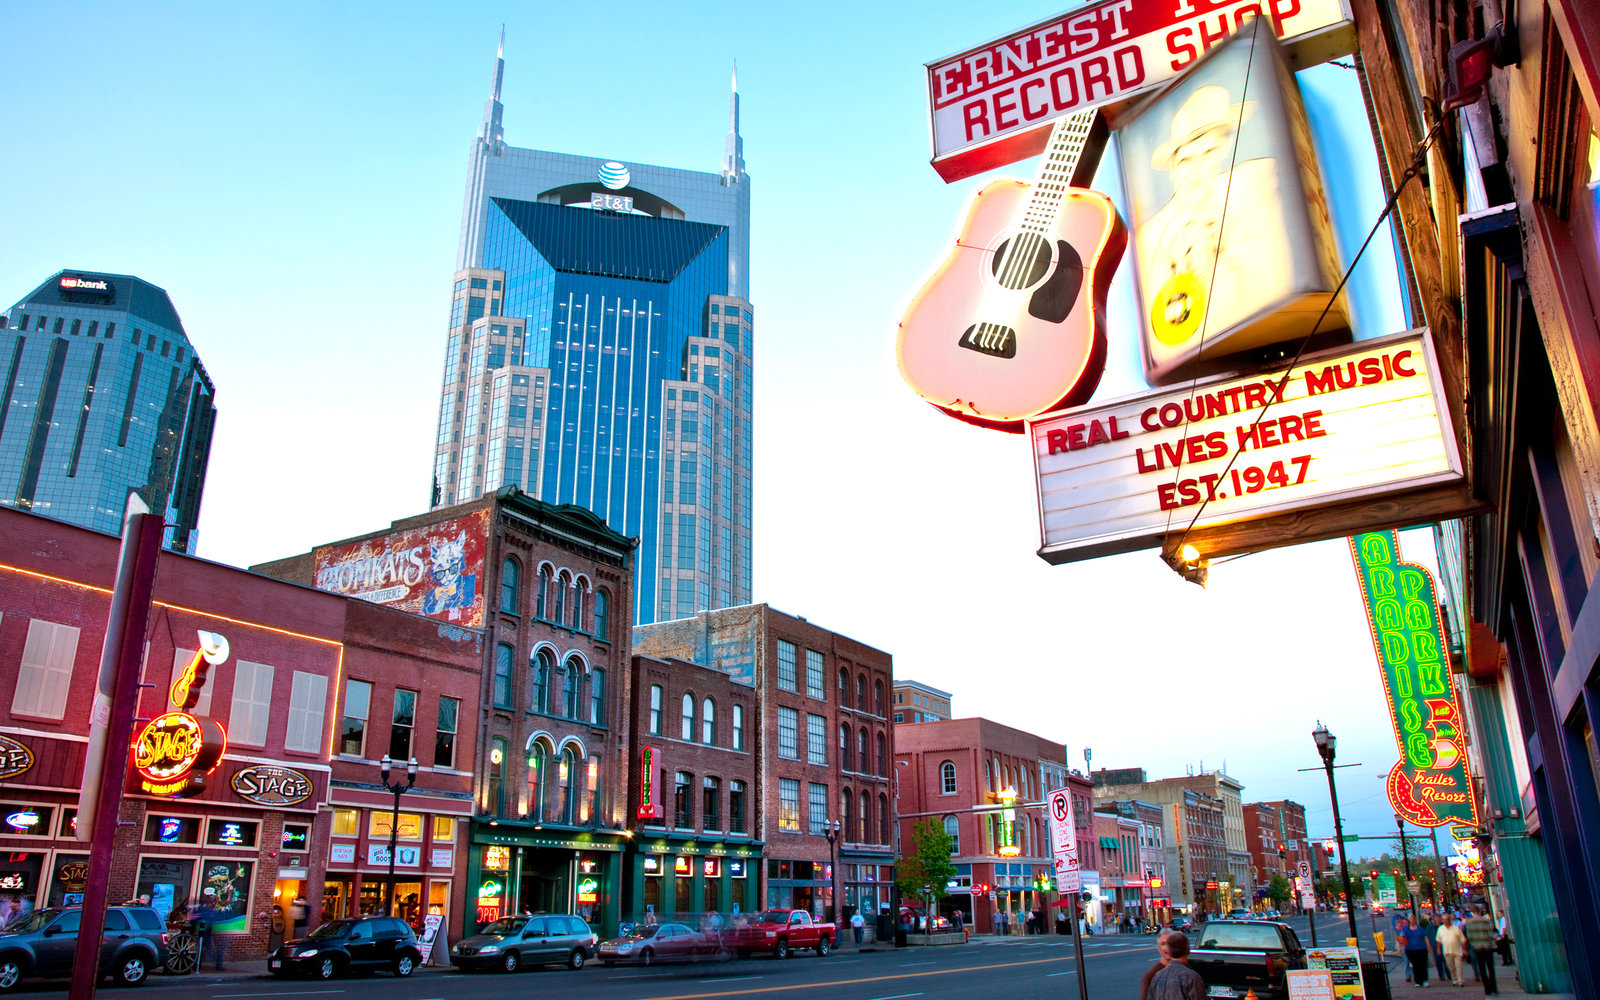 Downtown Nashville - Photo by Travel + Leisure